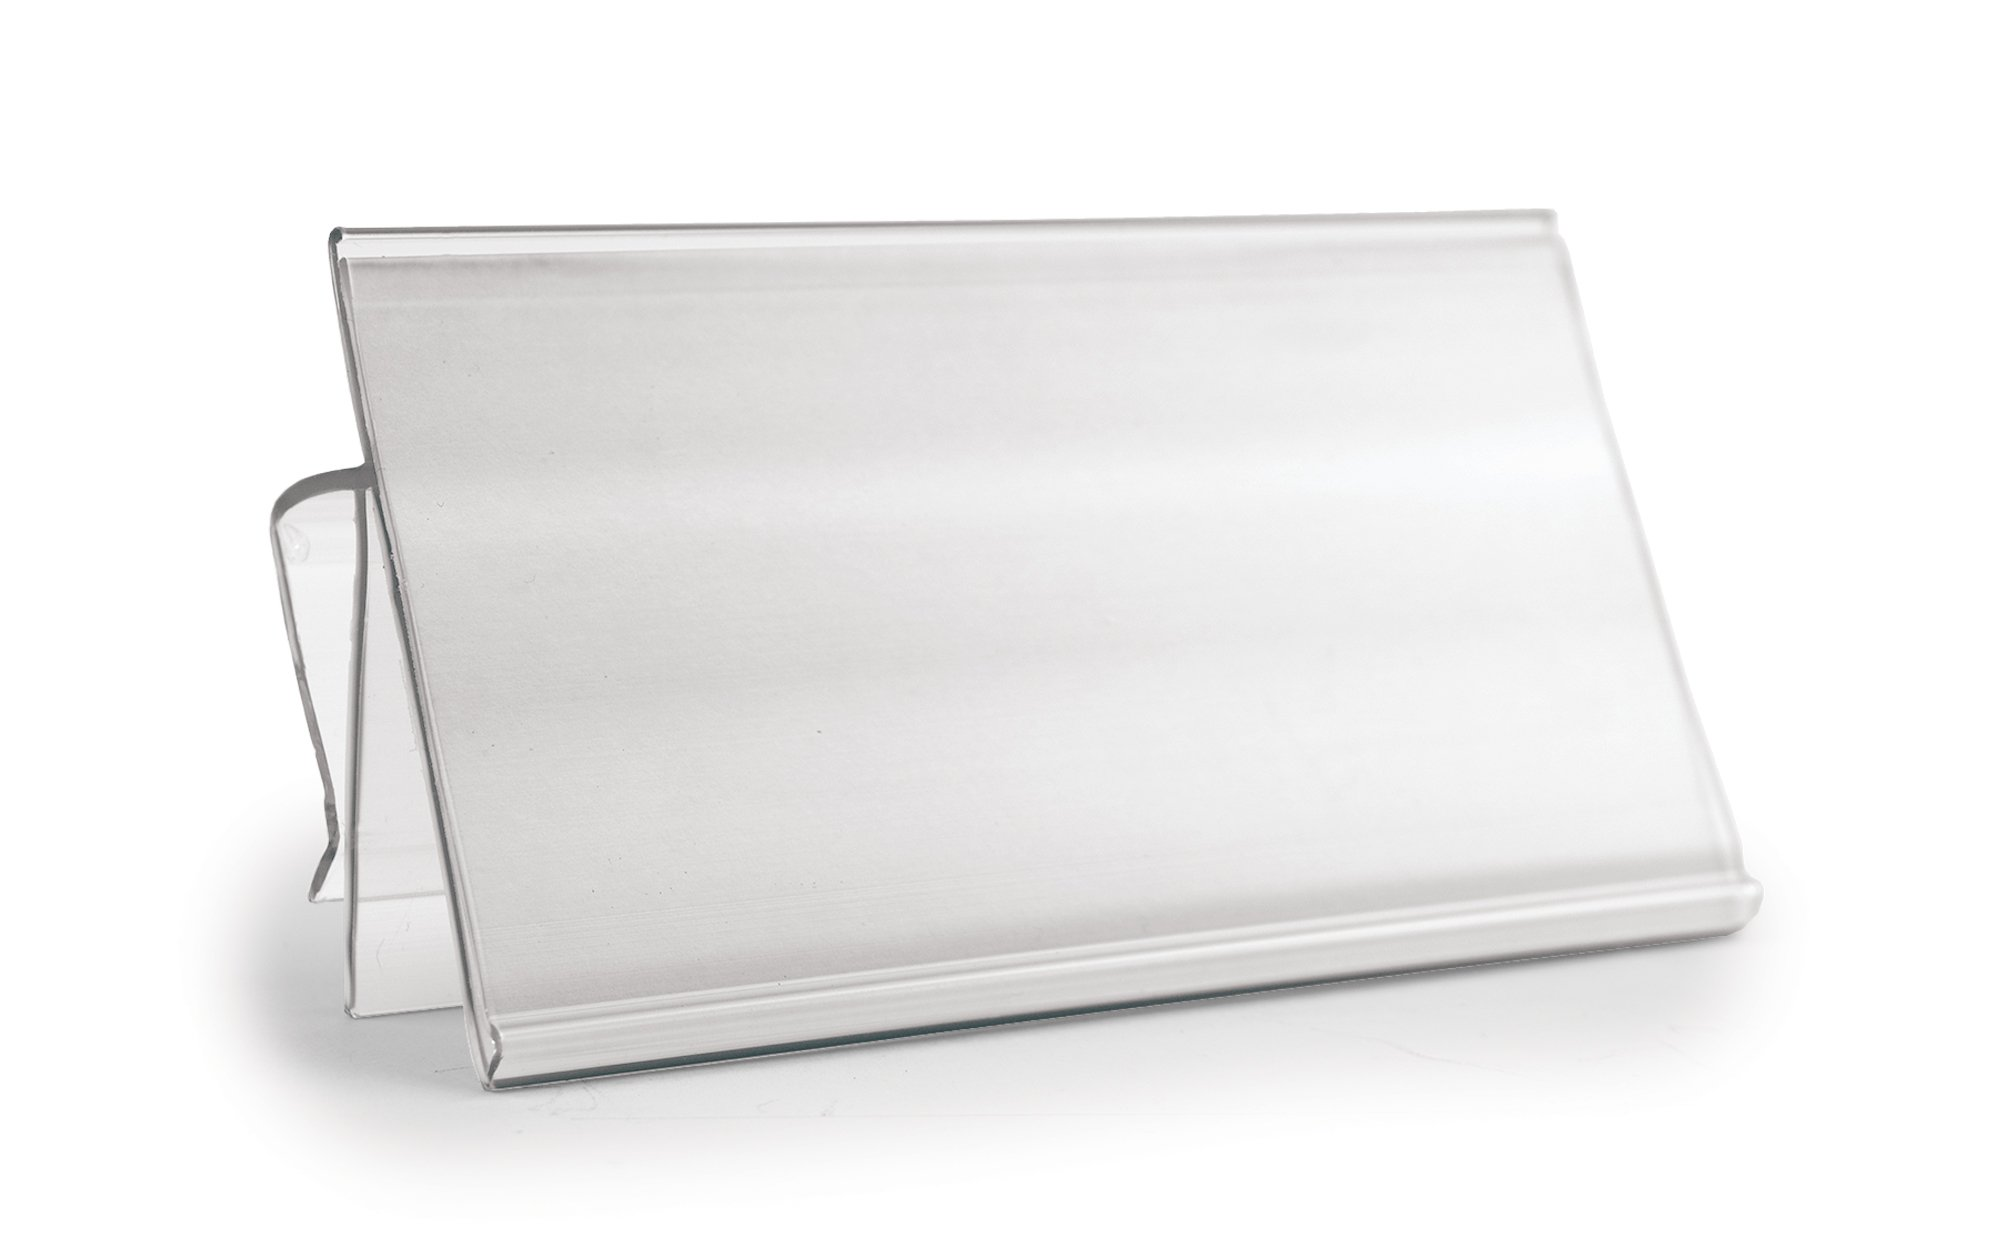 Clear Clip On Bin Label Holder - For Label Size 4''W x 2''H by Aigner Label Holder Corporation